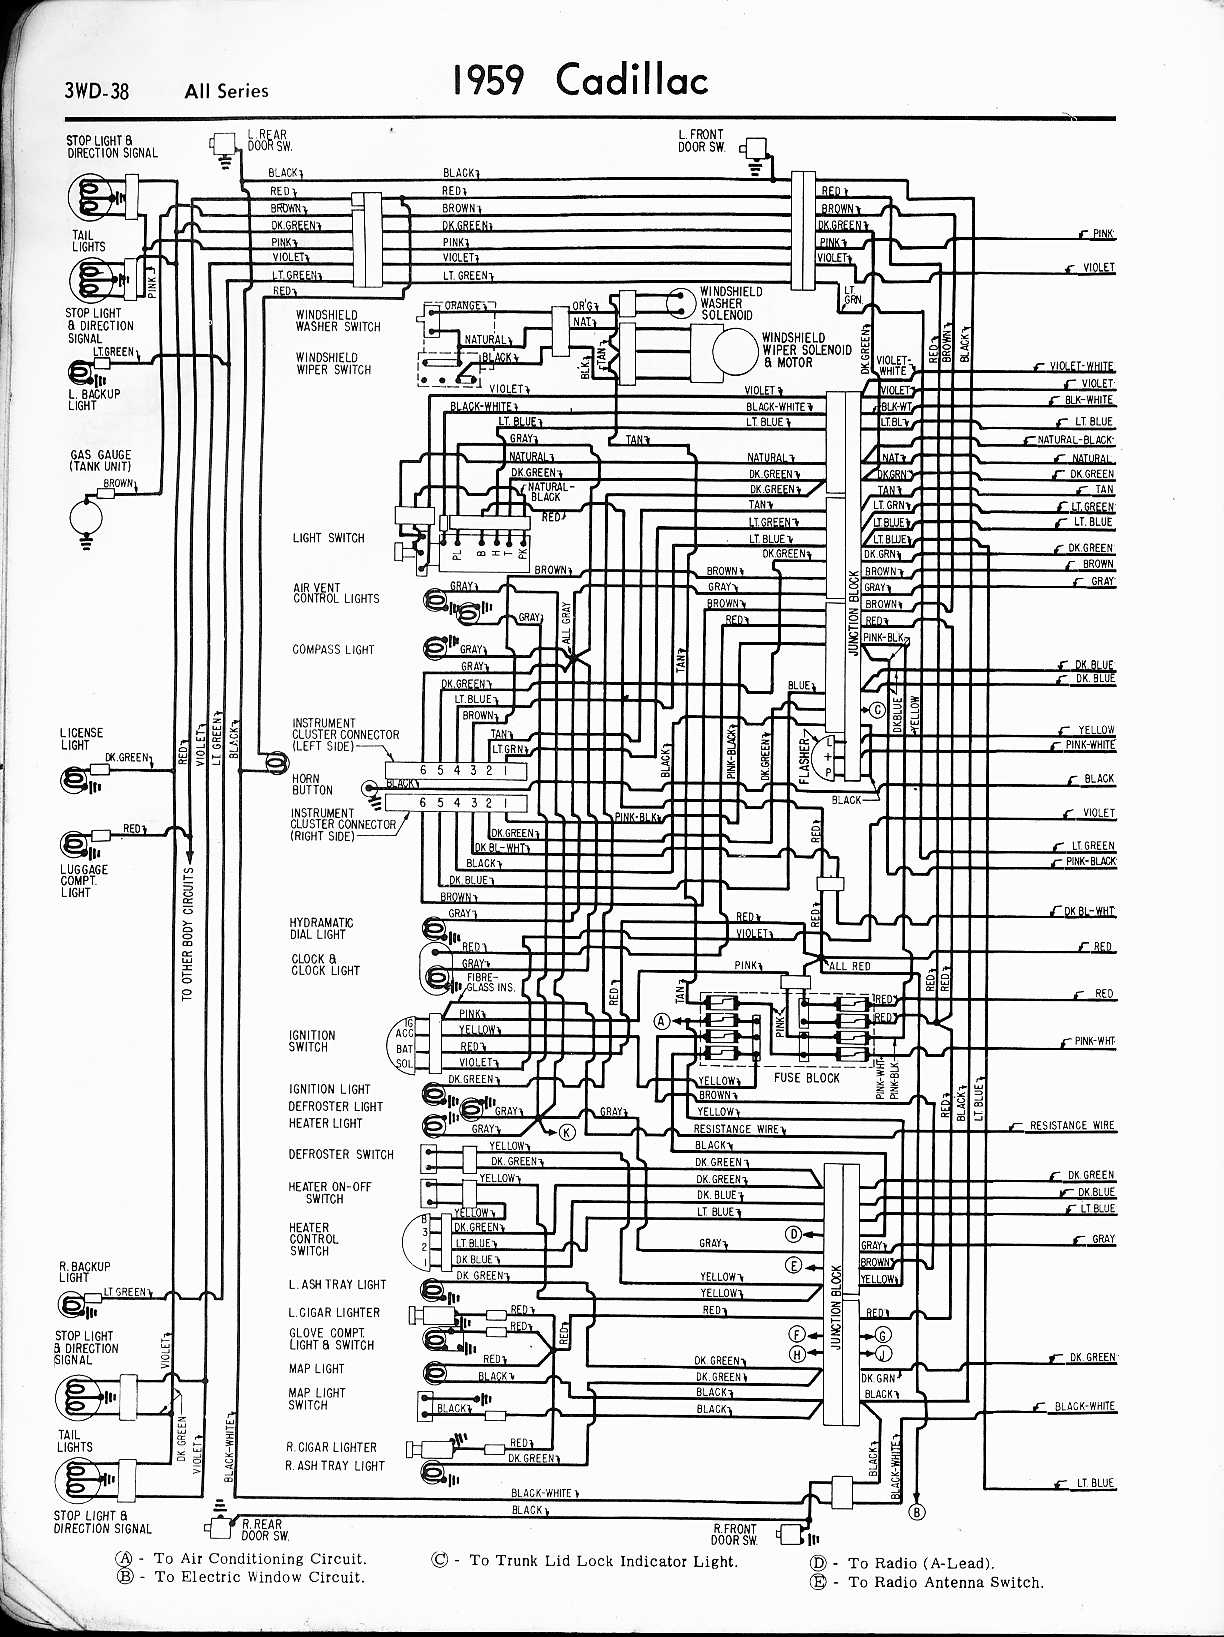 Cadillac Wiring Diagrams 1957 1965 1956 GMC Wiring Diagram 1956 Cadillac Wiring  Diagram